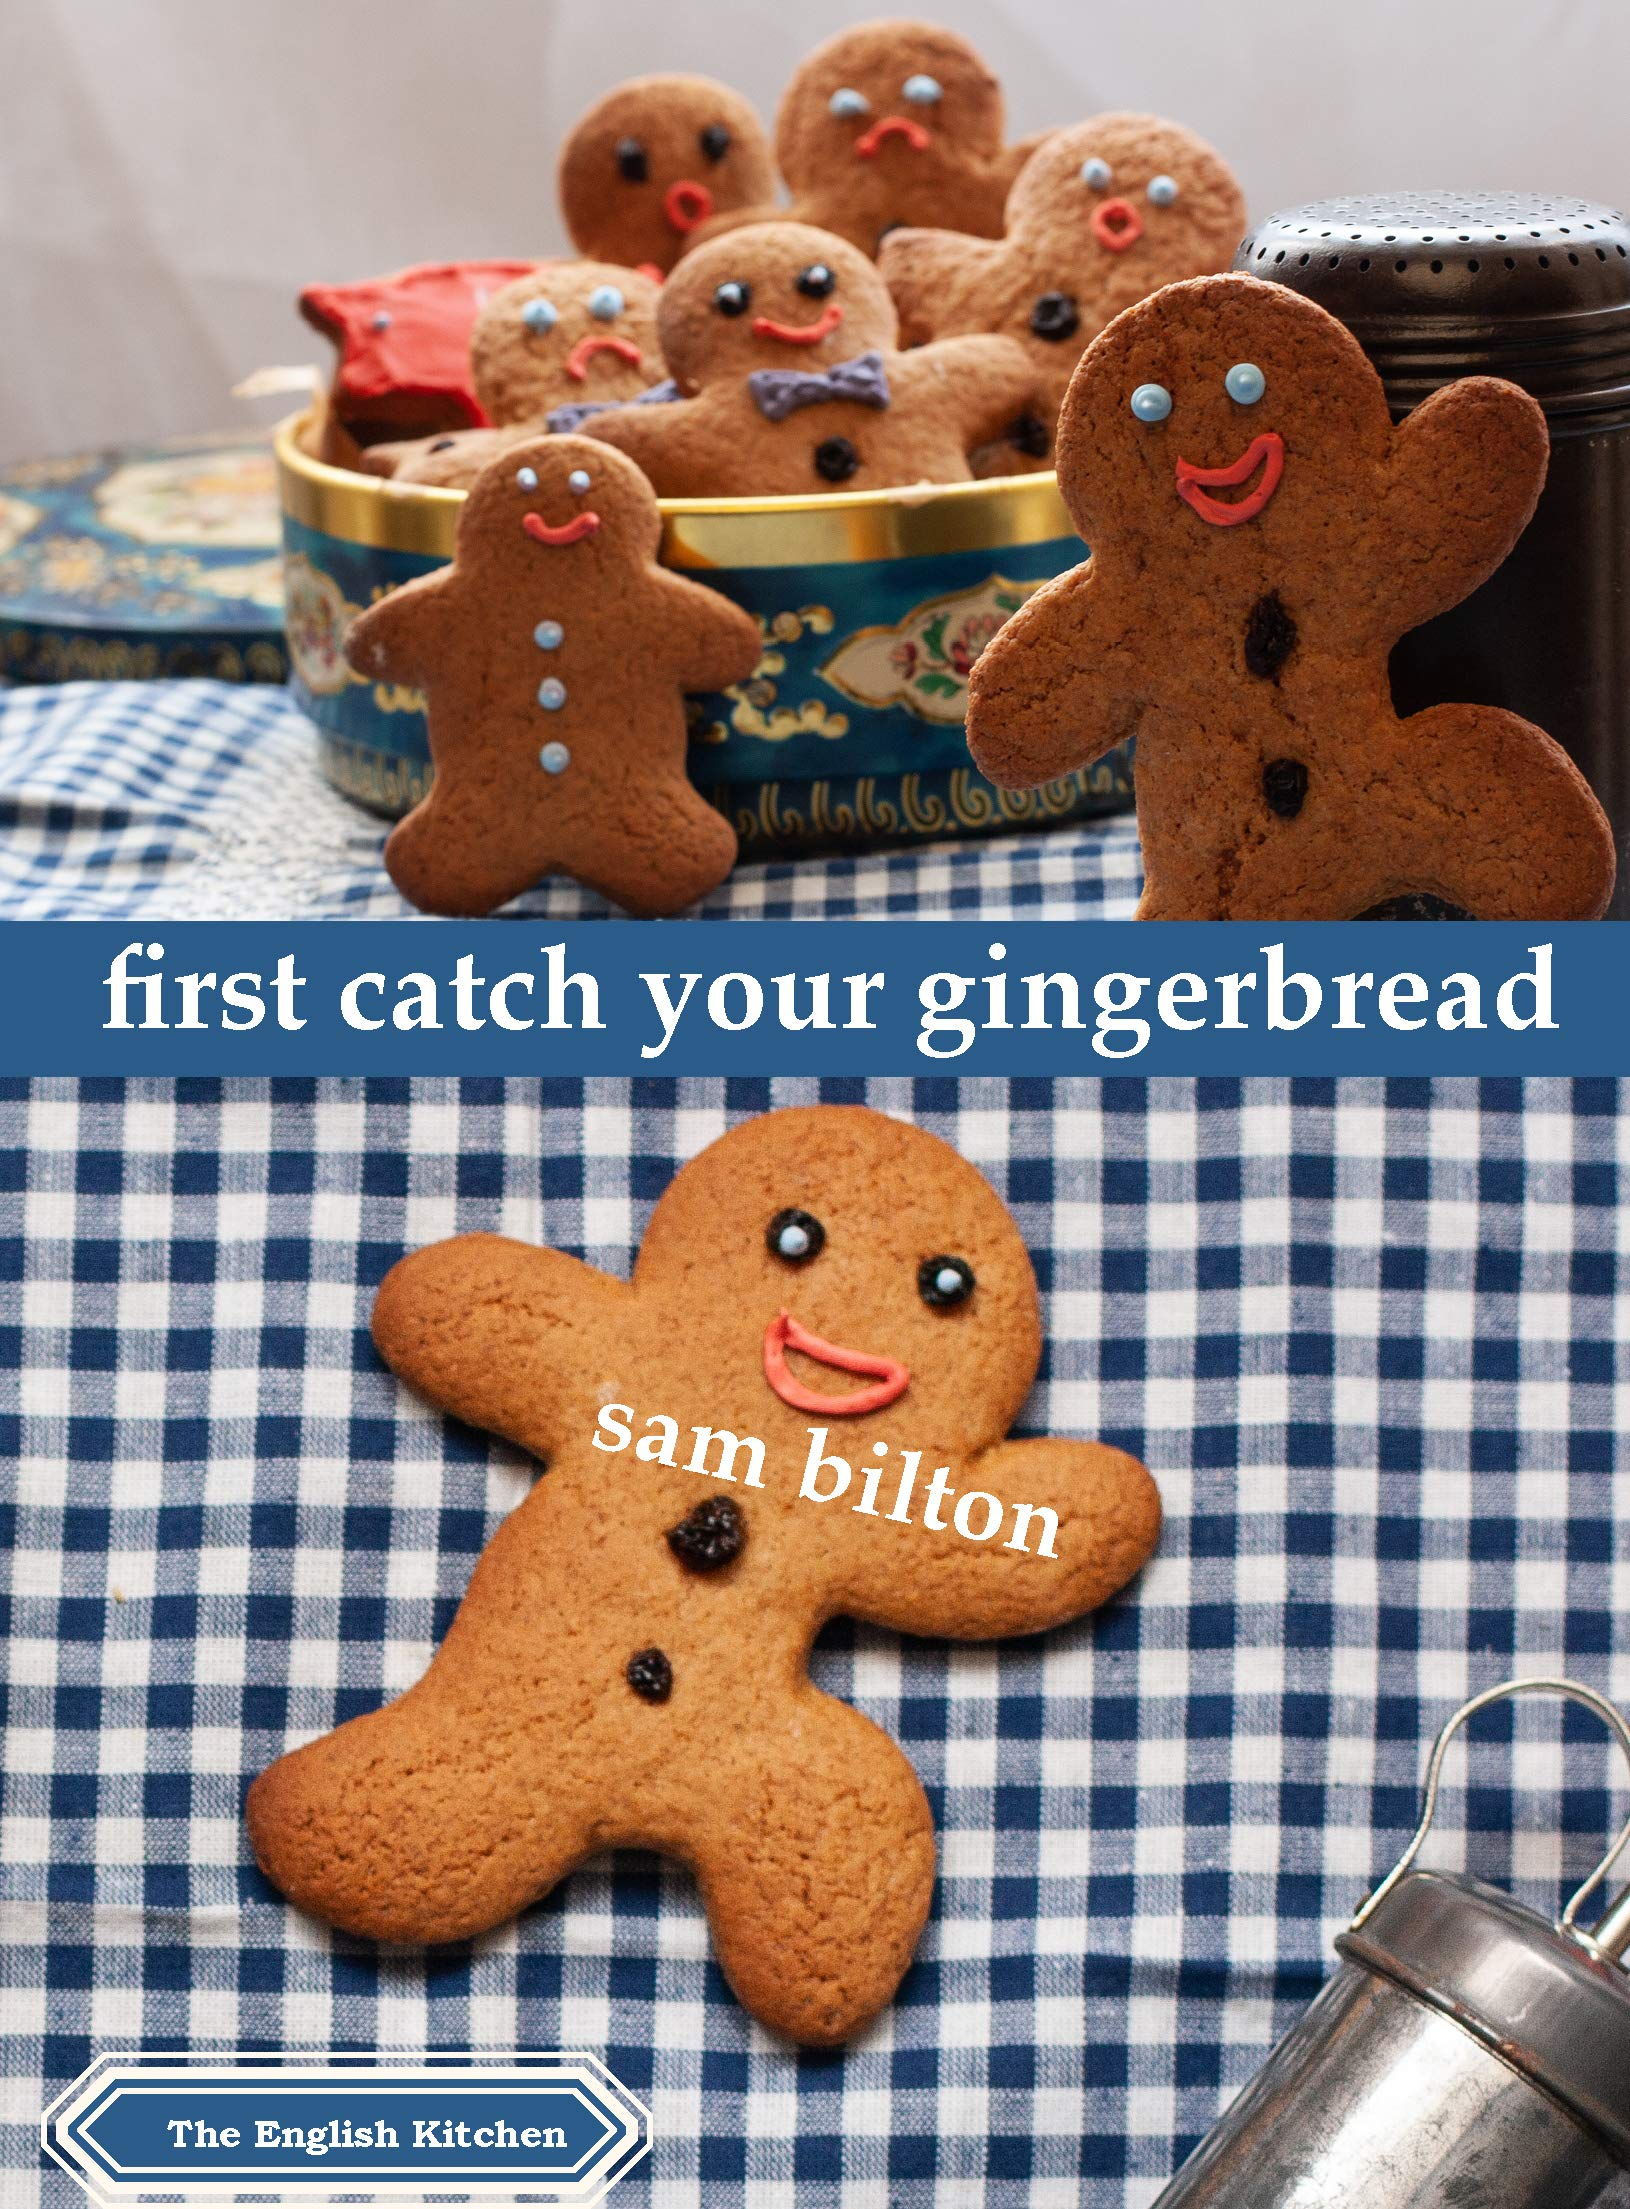 First Catch Your Gingerbread